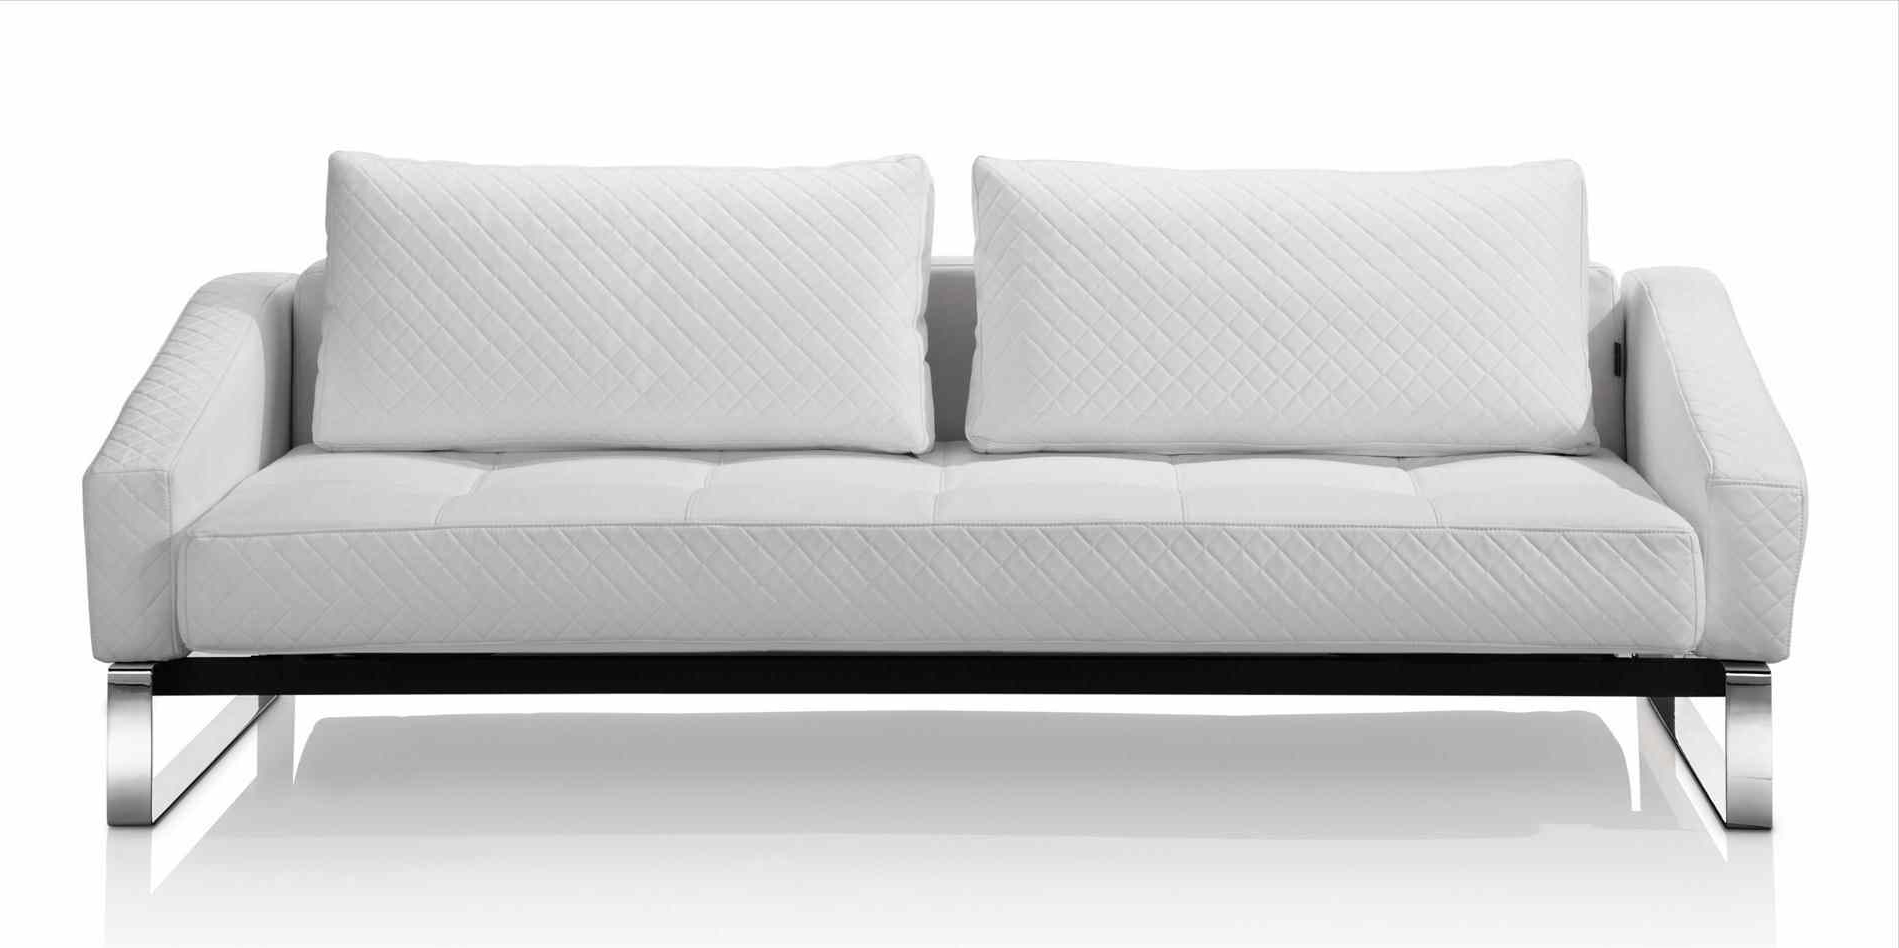 Well Known Sofa : Sofa Background White Modern Couch Amazing For Colette Gray Regarding White Modern Sofas (View 15 of 20)